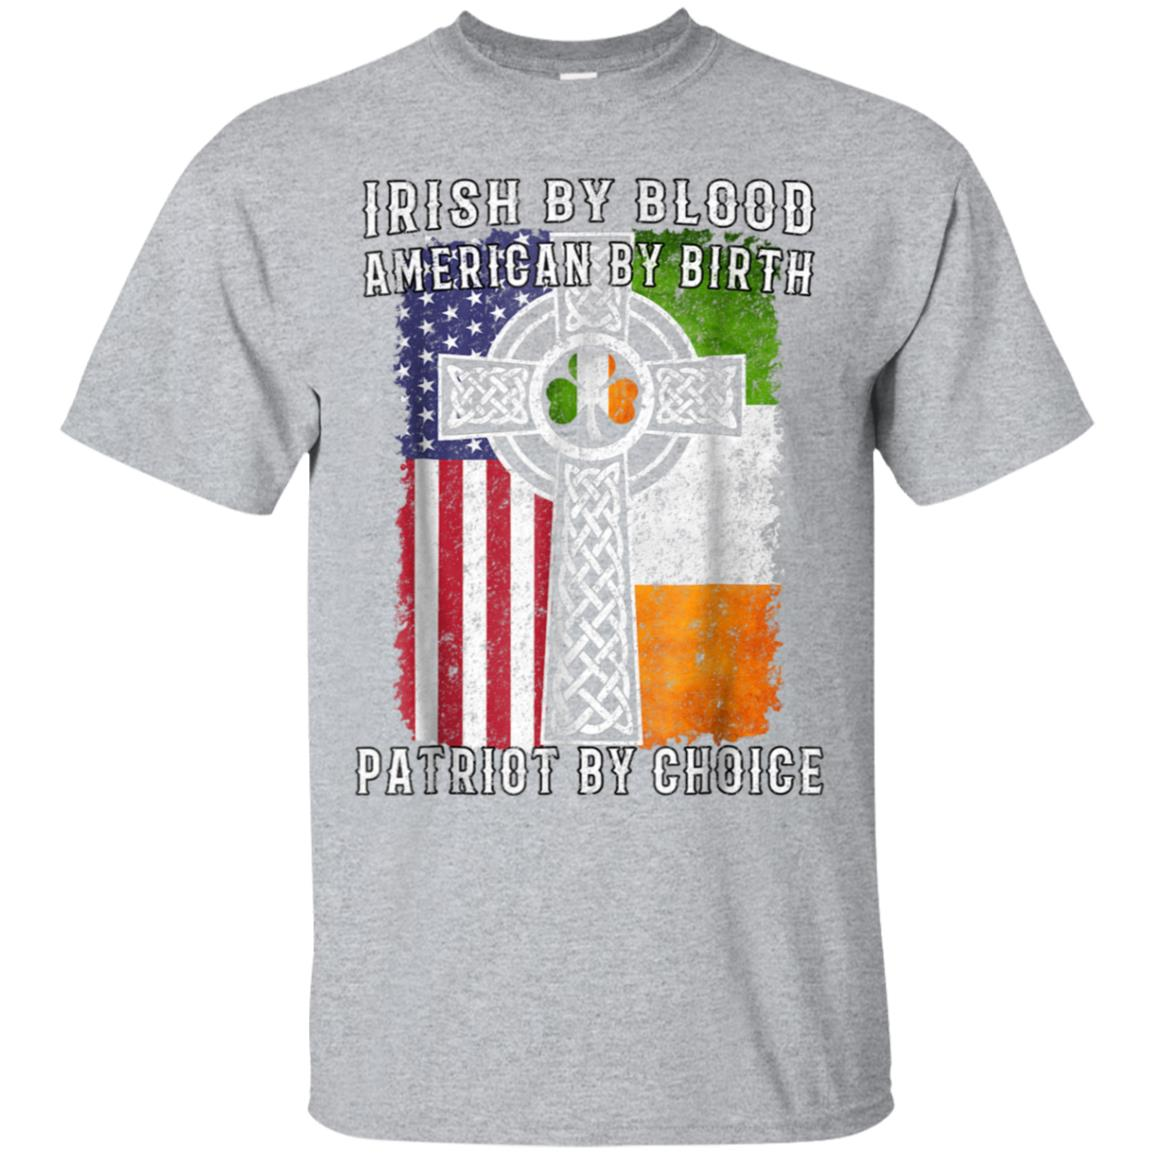 Irish By Blood American By Birth Patriot By Choice T-shirt 99promocode